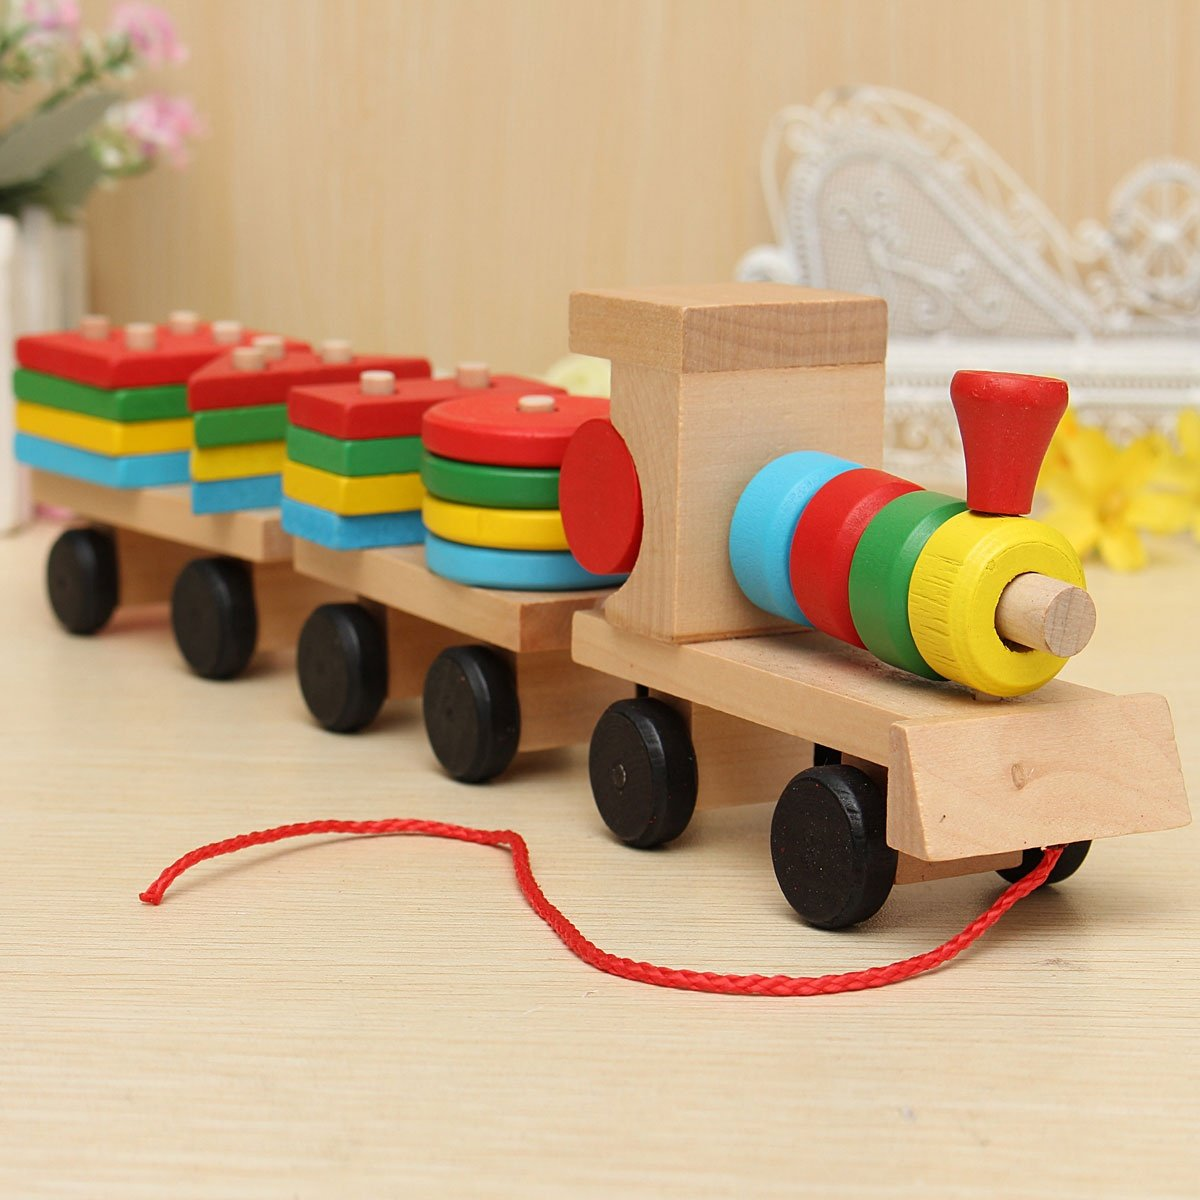 ZHCHL Lovely Educational Kid Baby Wooden Solid Wood Stacking Train Toddler Block Toy Gift Fun